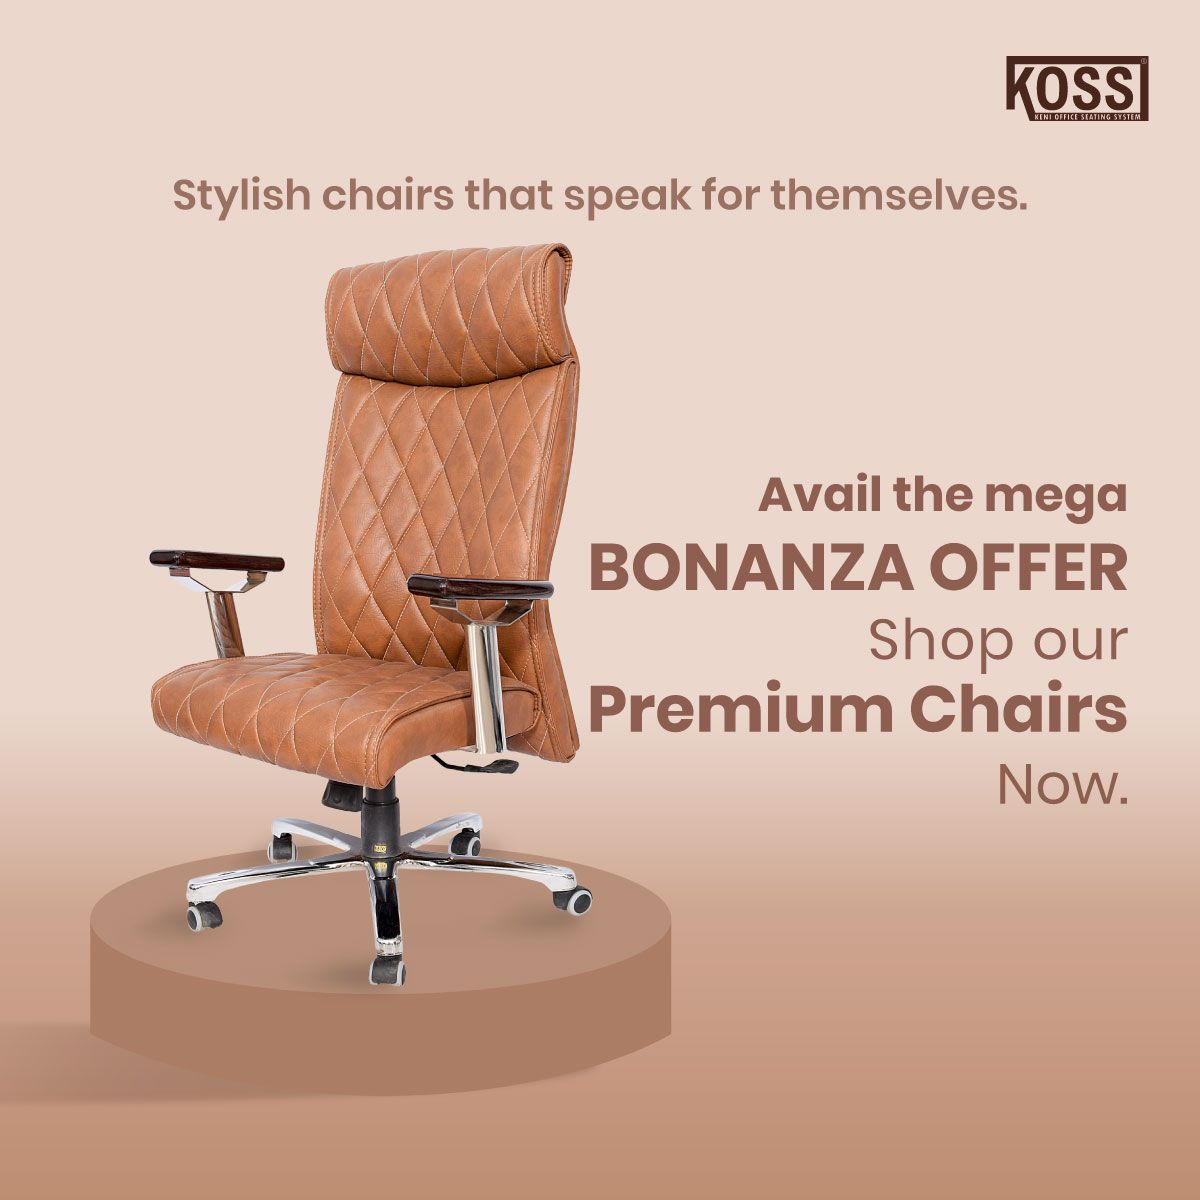 Turn your dream workspace into a reality! Shop now and stand a chance to win the Mega Bonanza grand prizes Hurry and shop! The last date of the offer is 17th October 2020. . . . #kossfurniture #furniturestore #furnituremaker #officefurnituresolutions #makeinindia #kossfurnitures #kosschairs #officefurniture #moderndesign #furnituresale #leapchair #officechair #deskchair #furnitureforsale #furnituremaking #furnitureart #bigbonanza #bonanza #comingsoon #jackpot #jackpotwinner